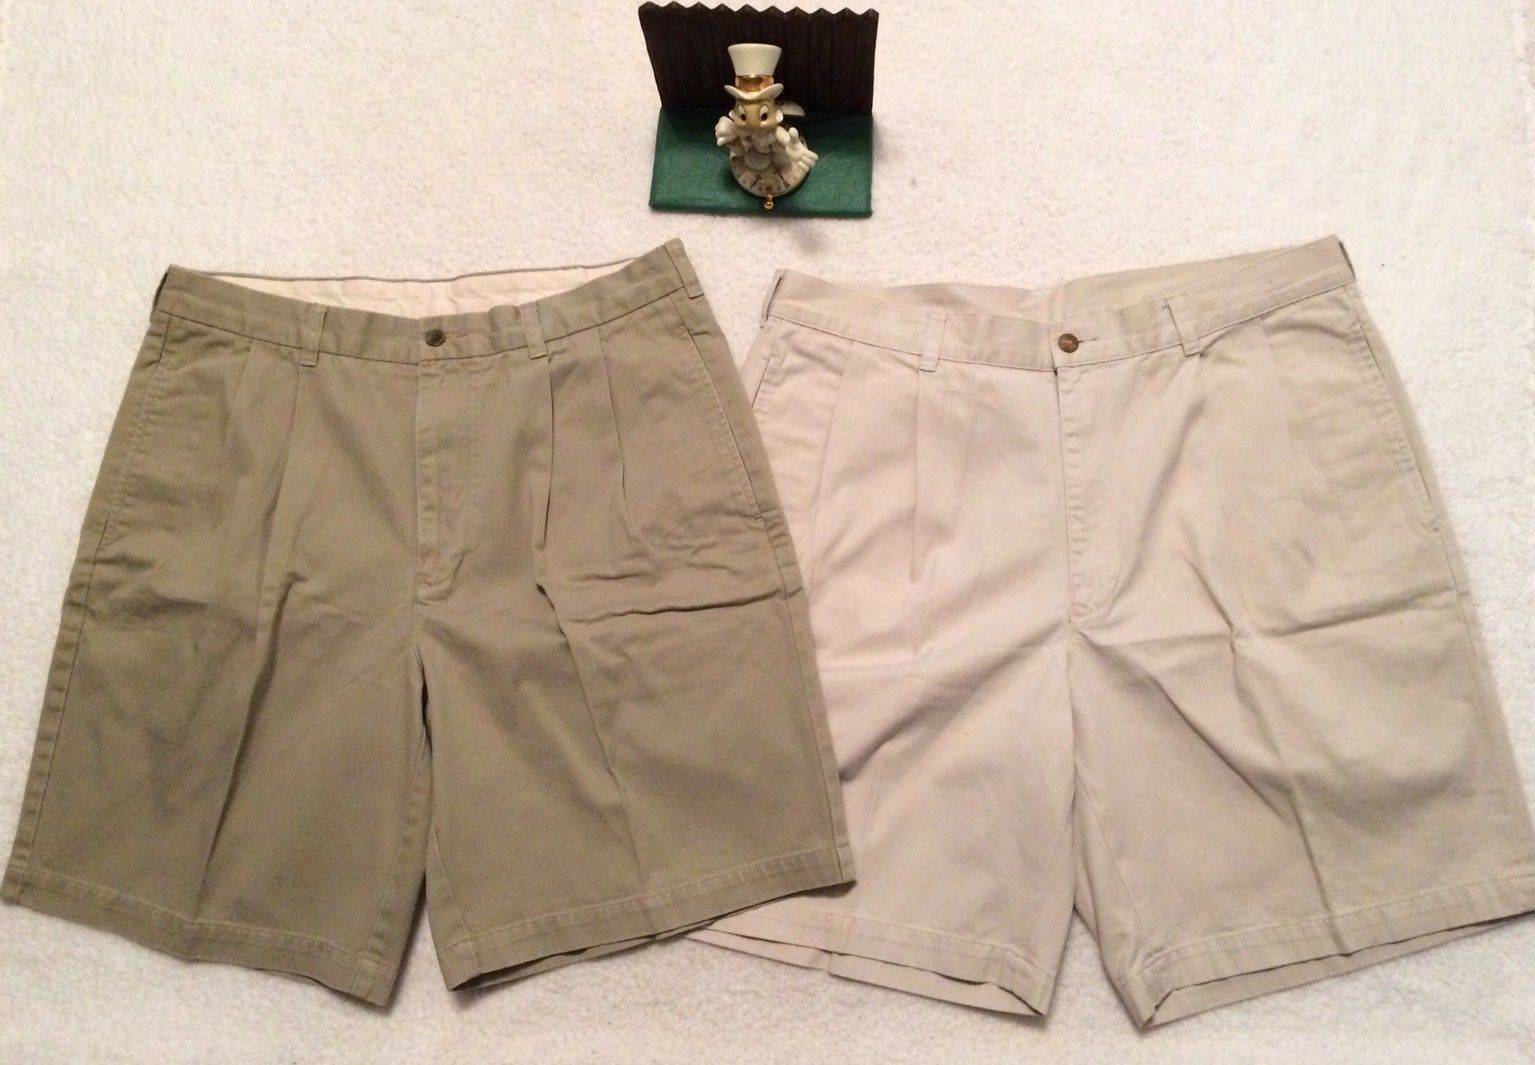 LOT OF 2 MEN'S BROOKS BredHERS BEIGE COTTON SHORTS SIZE 34 PLEAT FRONT. NICE